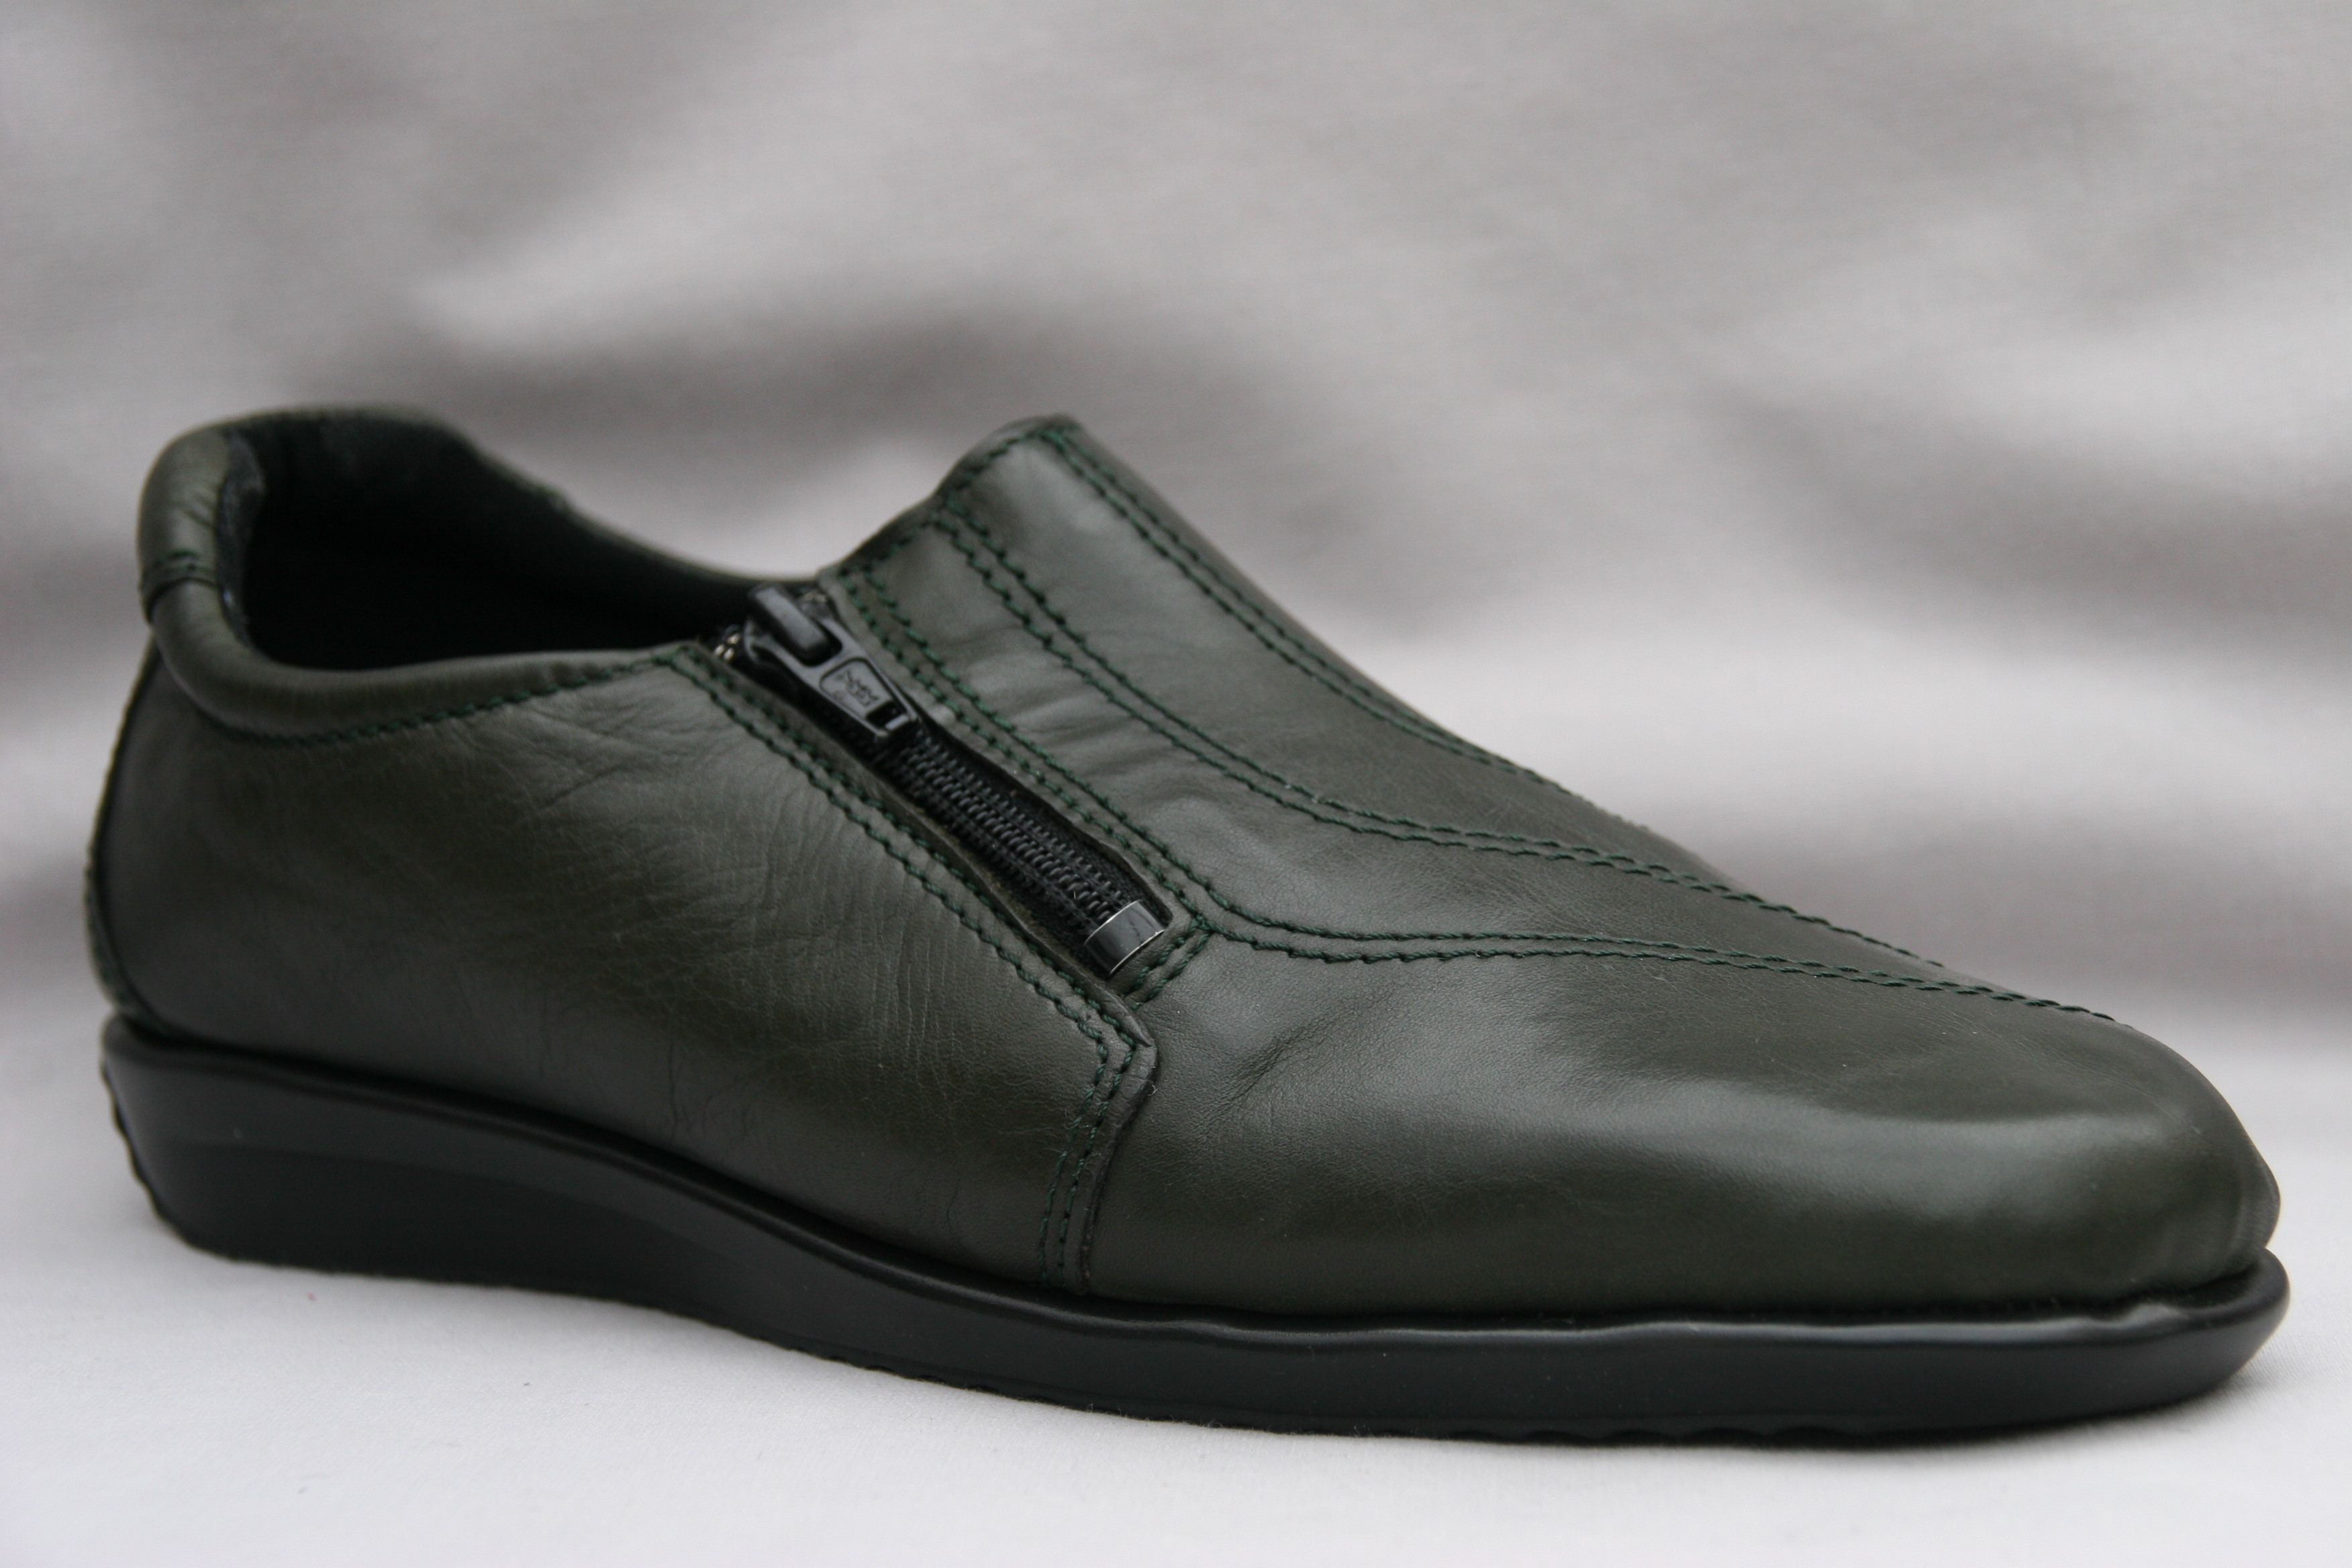 Flexishoe Green Leather